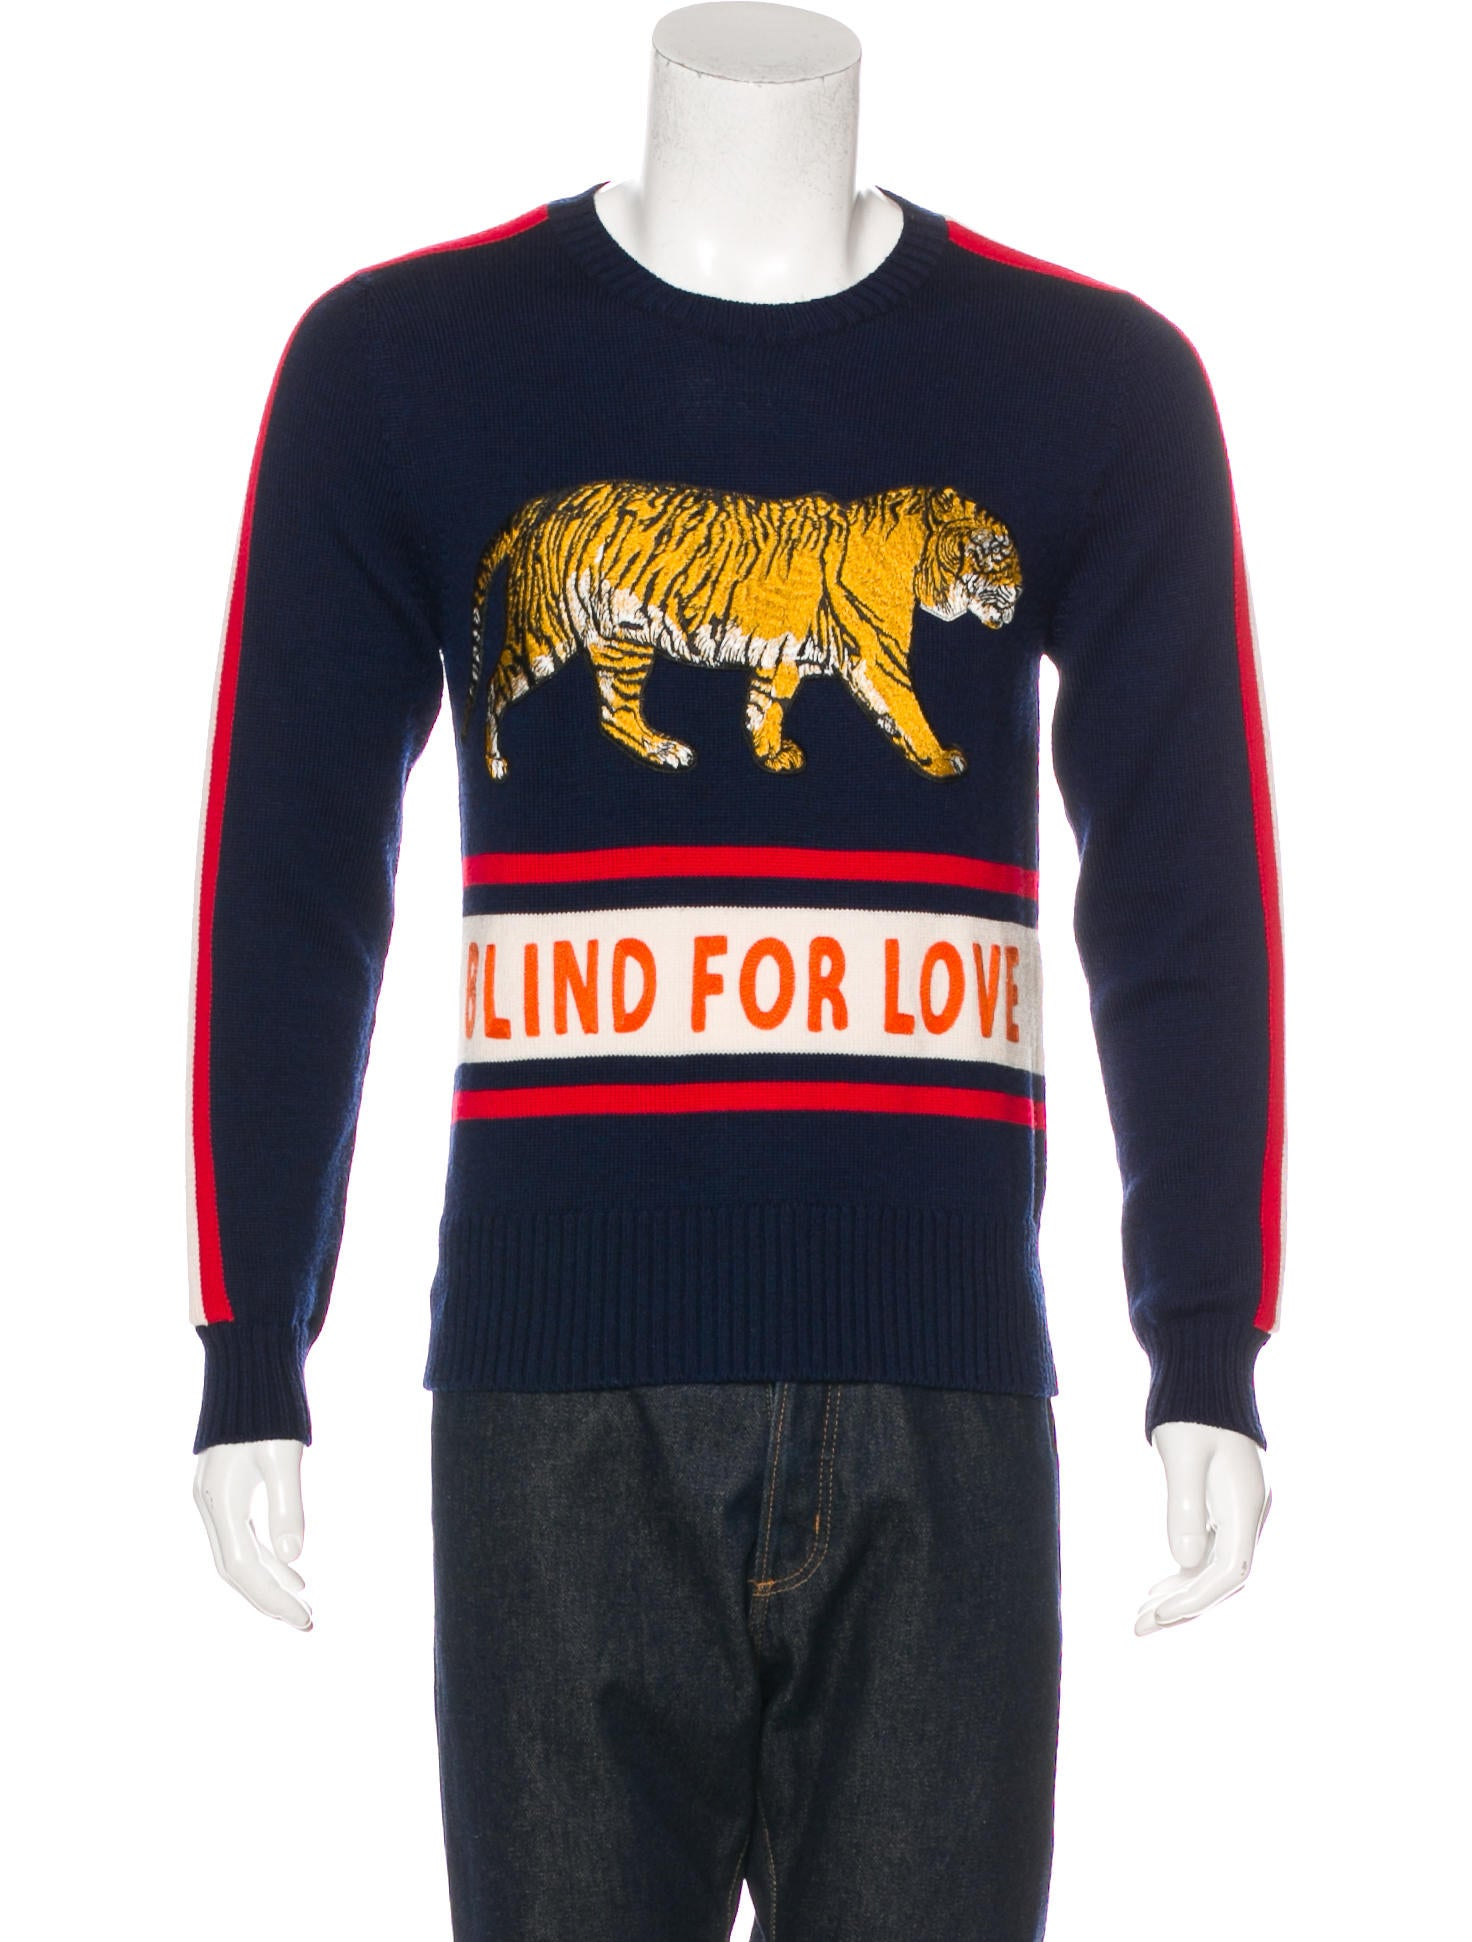 485bcafe81a3 Gucci 2017 Wool Blind For Lover Sweater - Clothing - GUC191588 | The ...